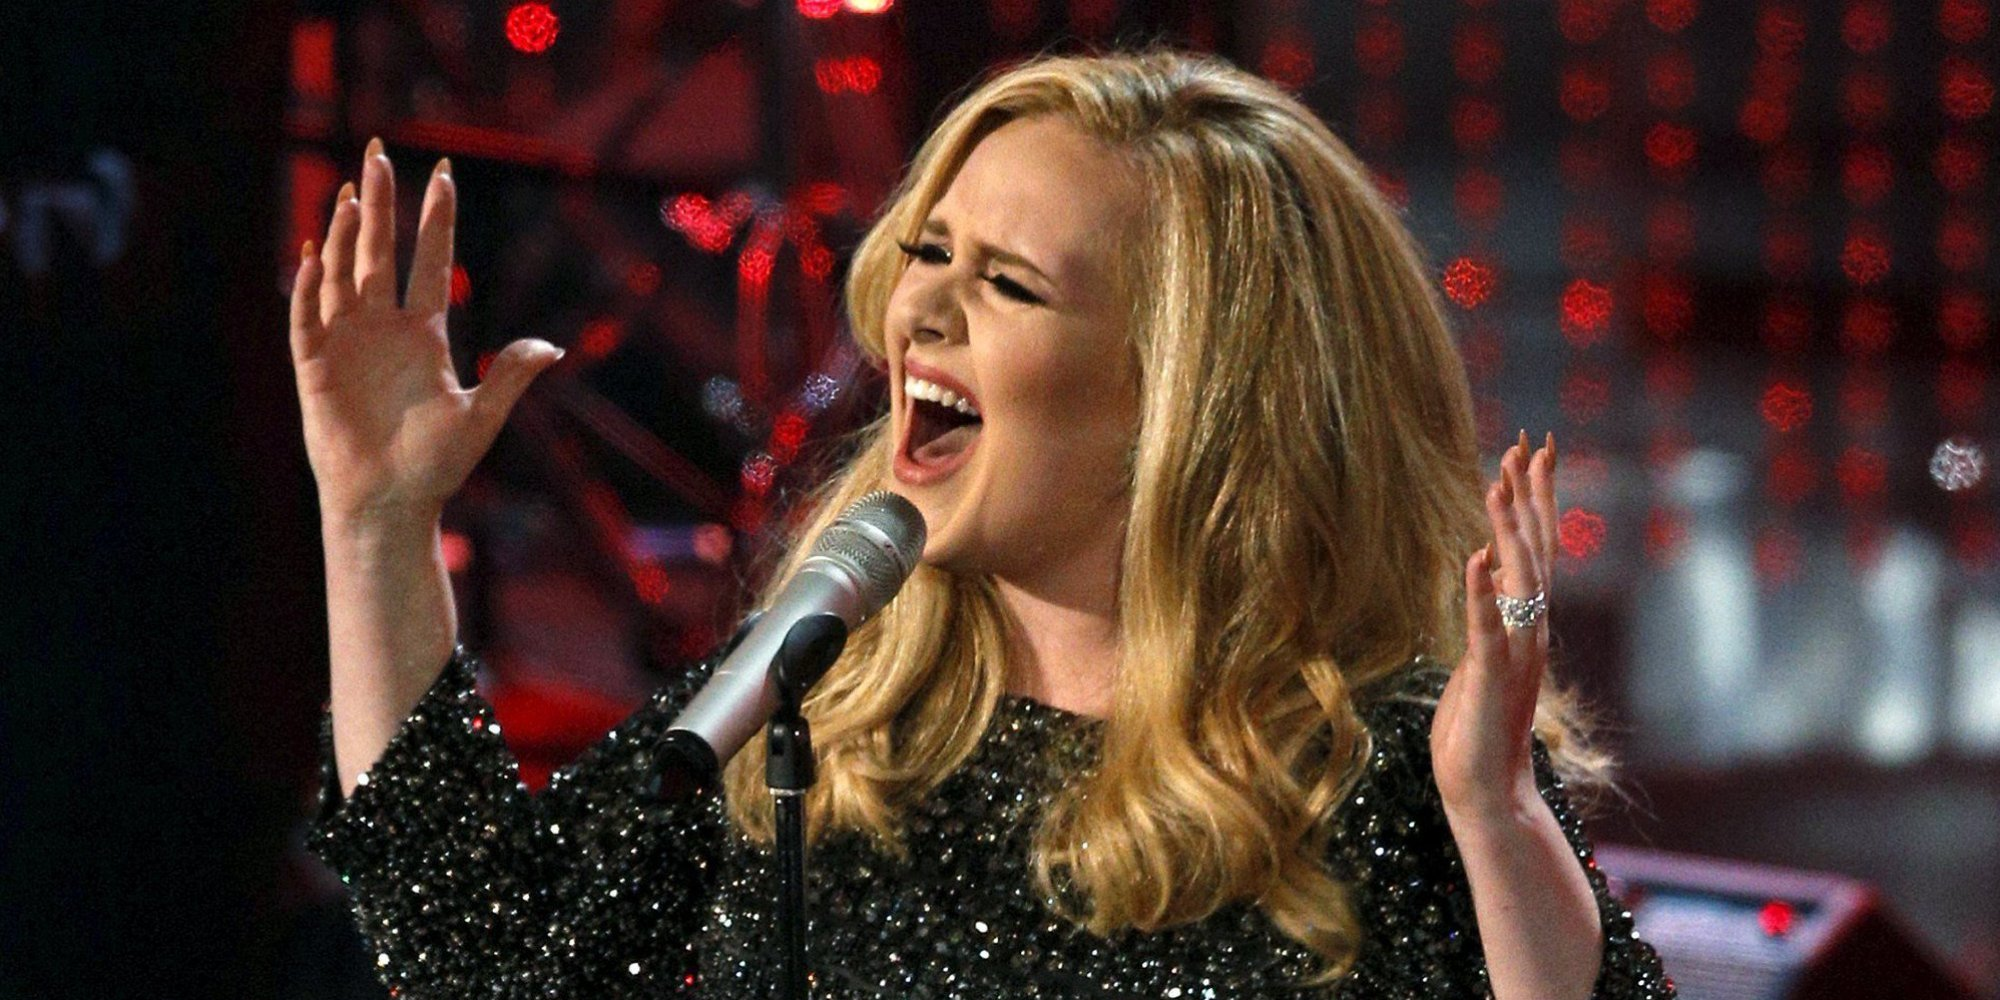 """British singer Adele performs the song """"Skyfall"""" from the film """"Skyfall,"""" at the 85th Academy Awards in Hollywood, California, United States, in this file photo taken February 24, 2013. Adele, whose latest album """"25"""" has smashed sales records in its first week of release, announced on Thursday she would begin a 15-week concert tour of Britain, Ireland and continental Europe in February. The tour will open on Feb 29 at the SSE Arena in Belfast and will end on June 13 at the Sportpaleis in Antwerp, Belgium, a notice sent to subscribers to her website said. Other concerts will be given elsewhere in Britain and in Ireland, Norway, Denmark, Germany, Switzerland, Portugal, Spain, Italy, the Netherlands and France, the notice said. REUTERS/Mario Anzuoni/Files"""